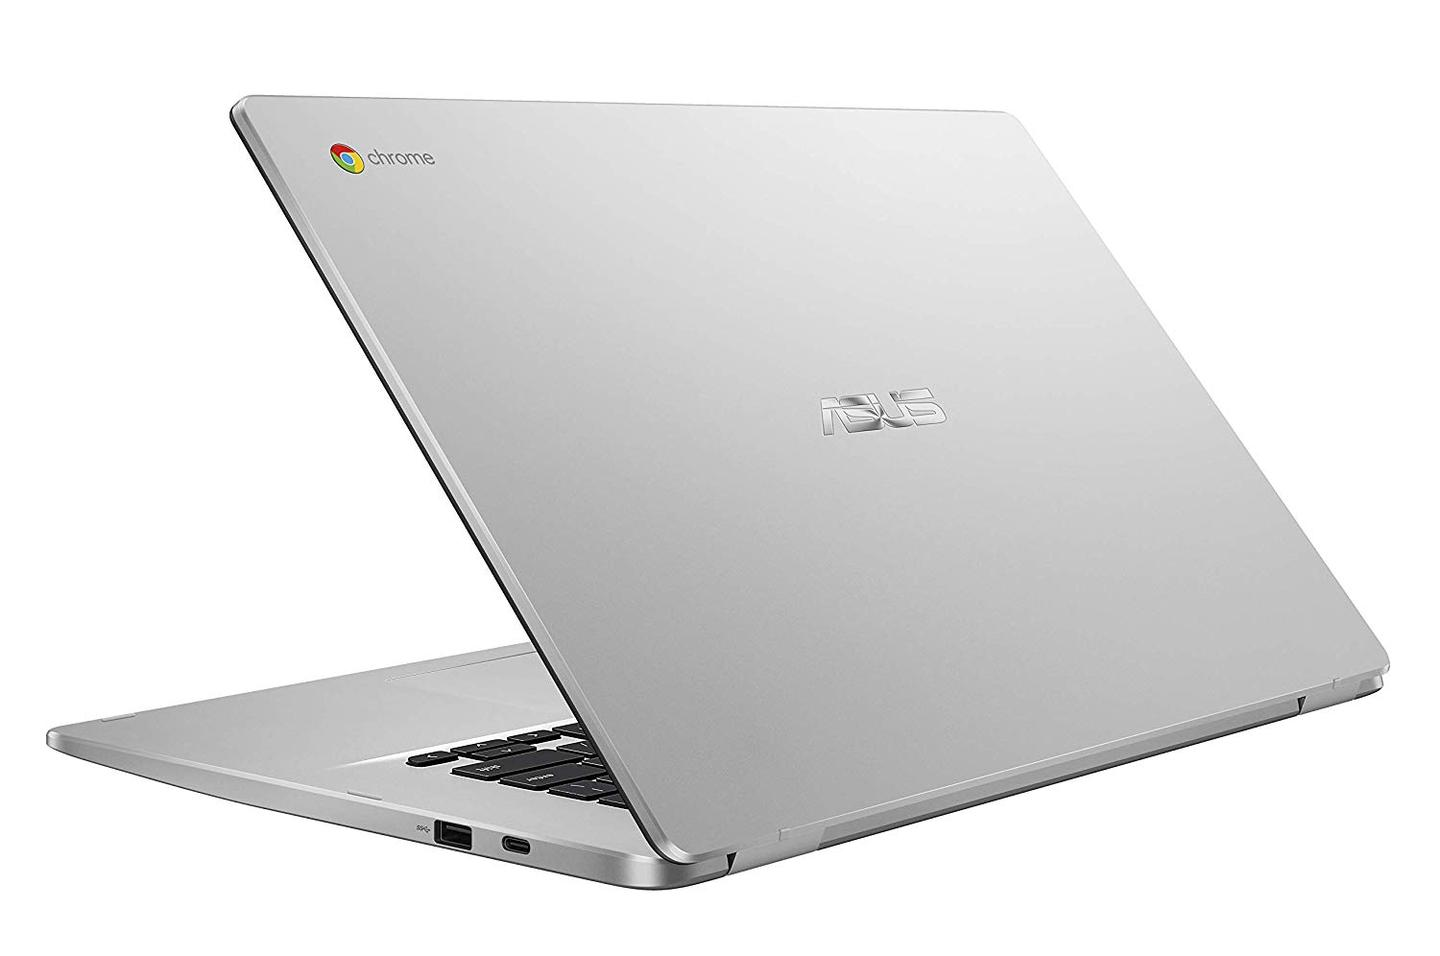 TheAsus Chromebook C523 has a 38 Wh Lithiumpolymer battery that's reported good for up to 10 hours of use between charges